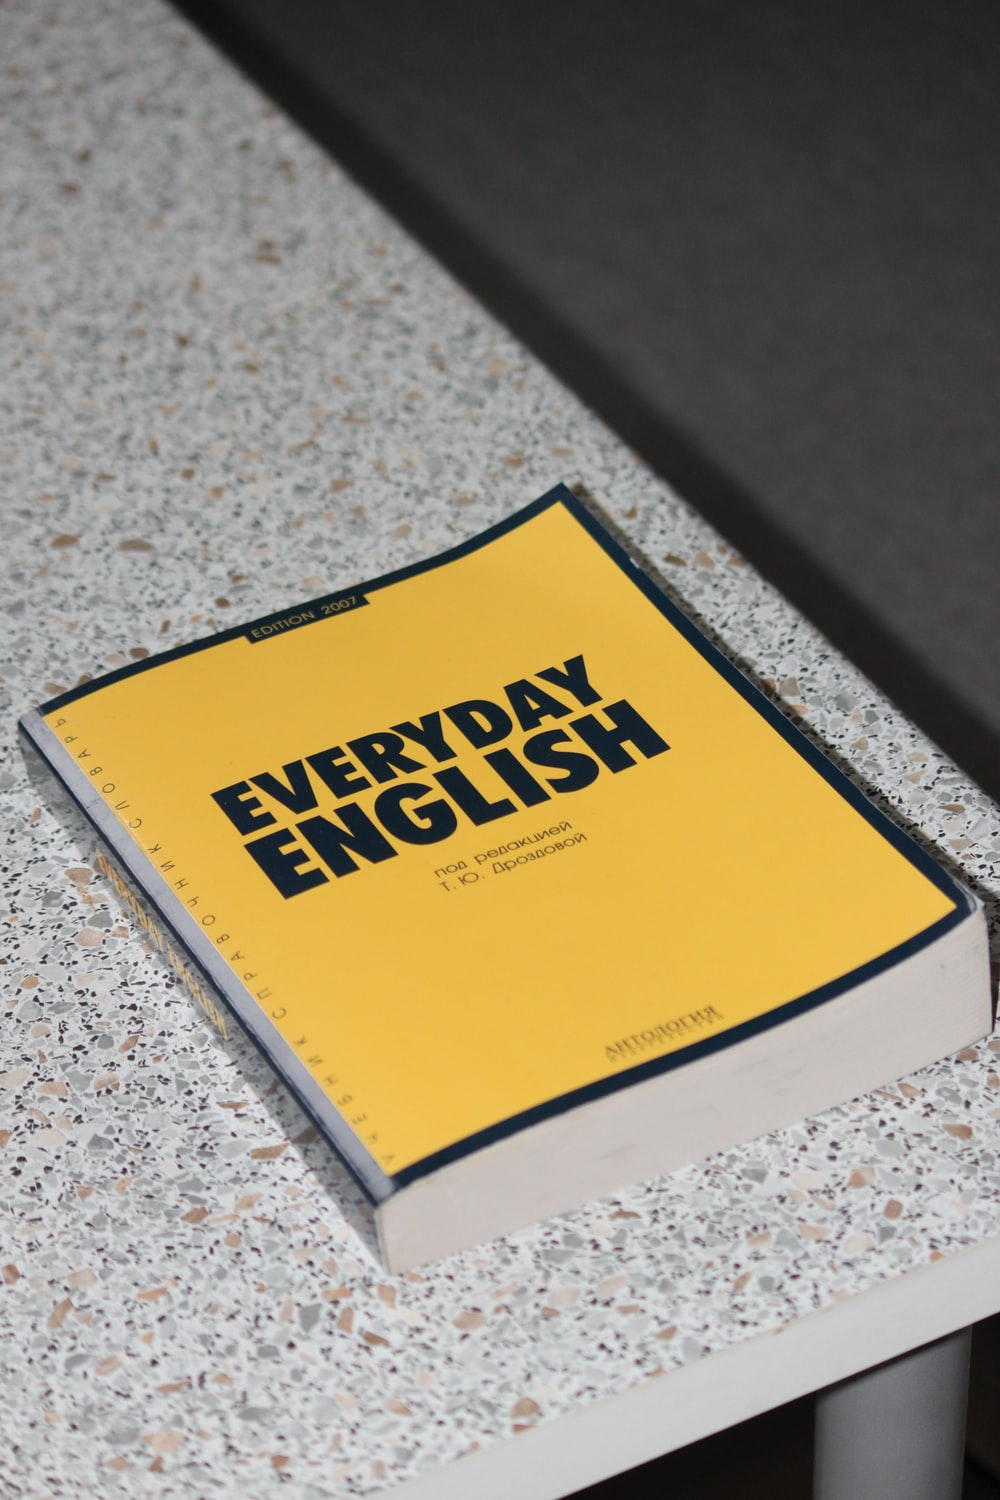 Everyday English book